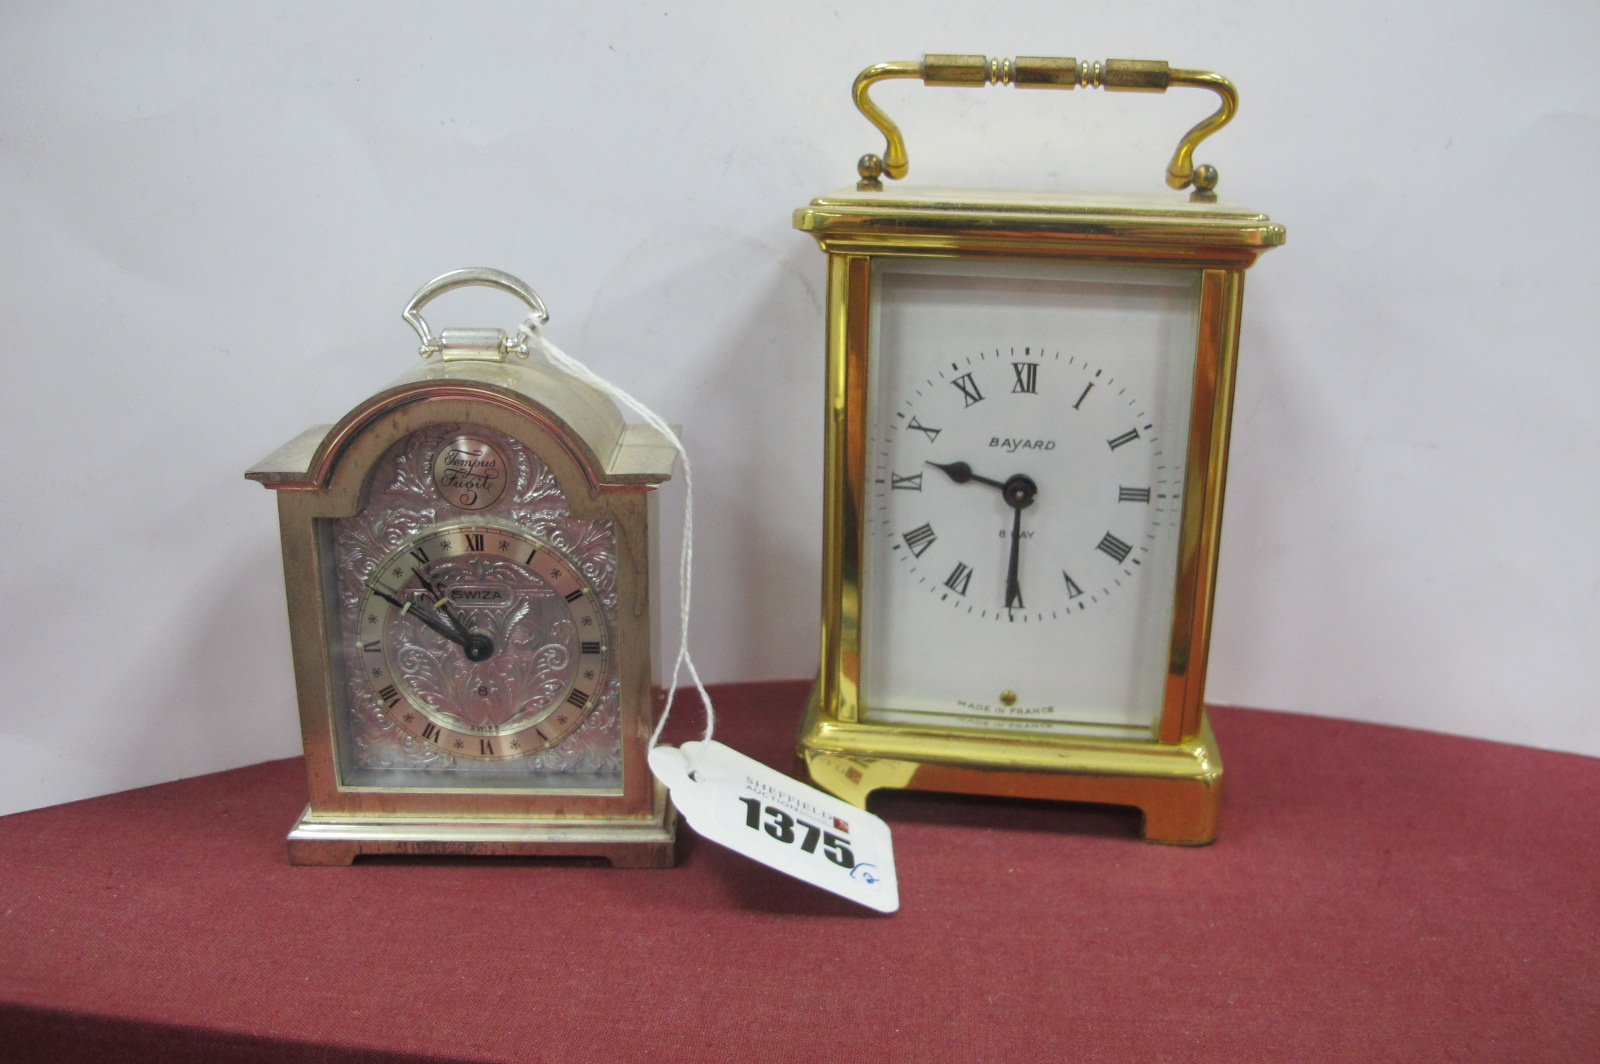 Bayard Brass Cased Carriage Clock, having eight day movement, 12cm high with handle down, Swiza